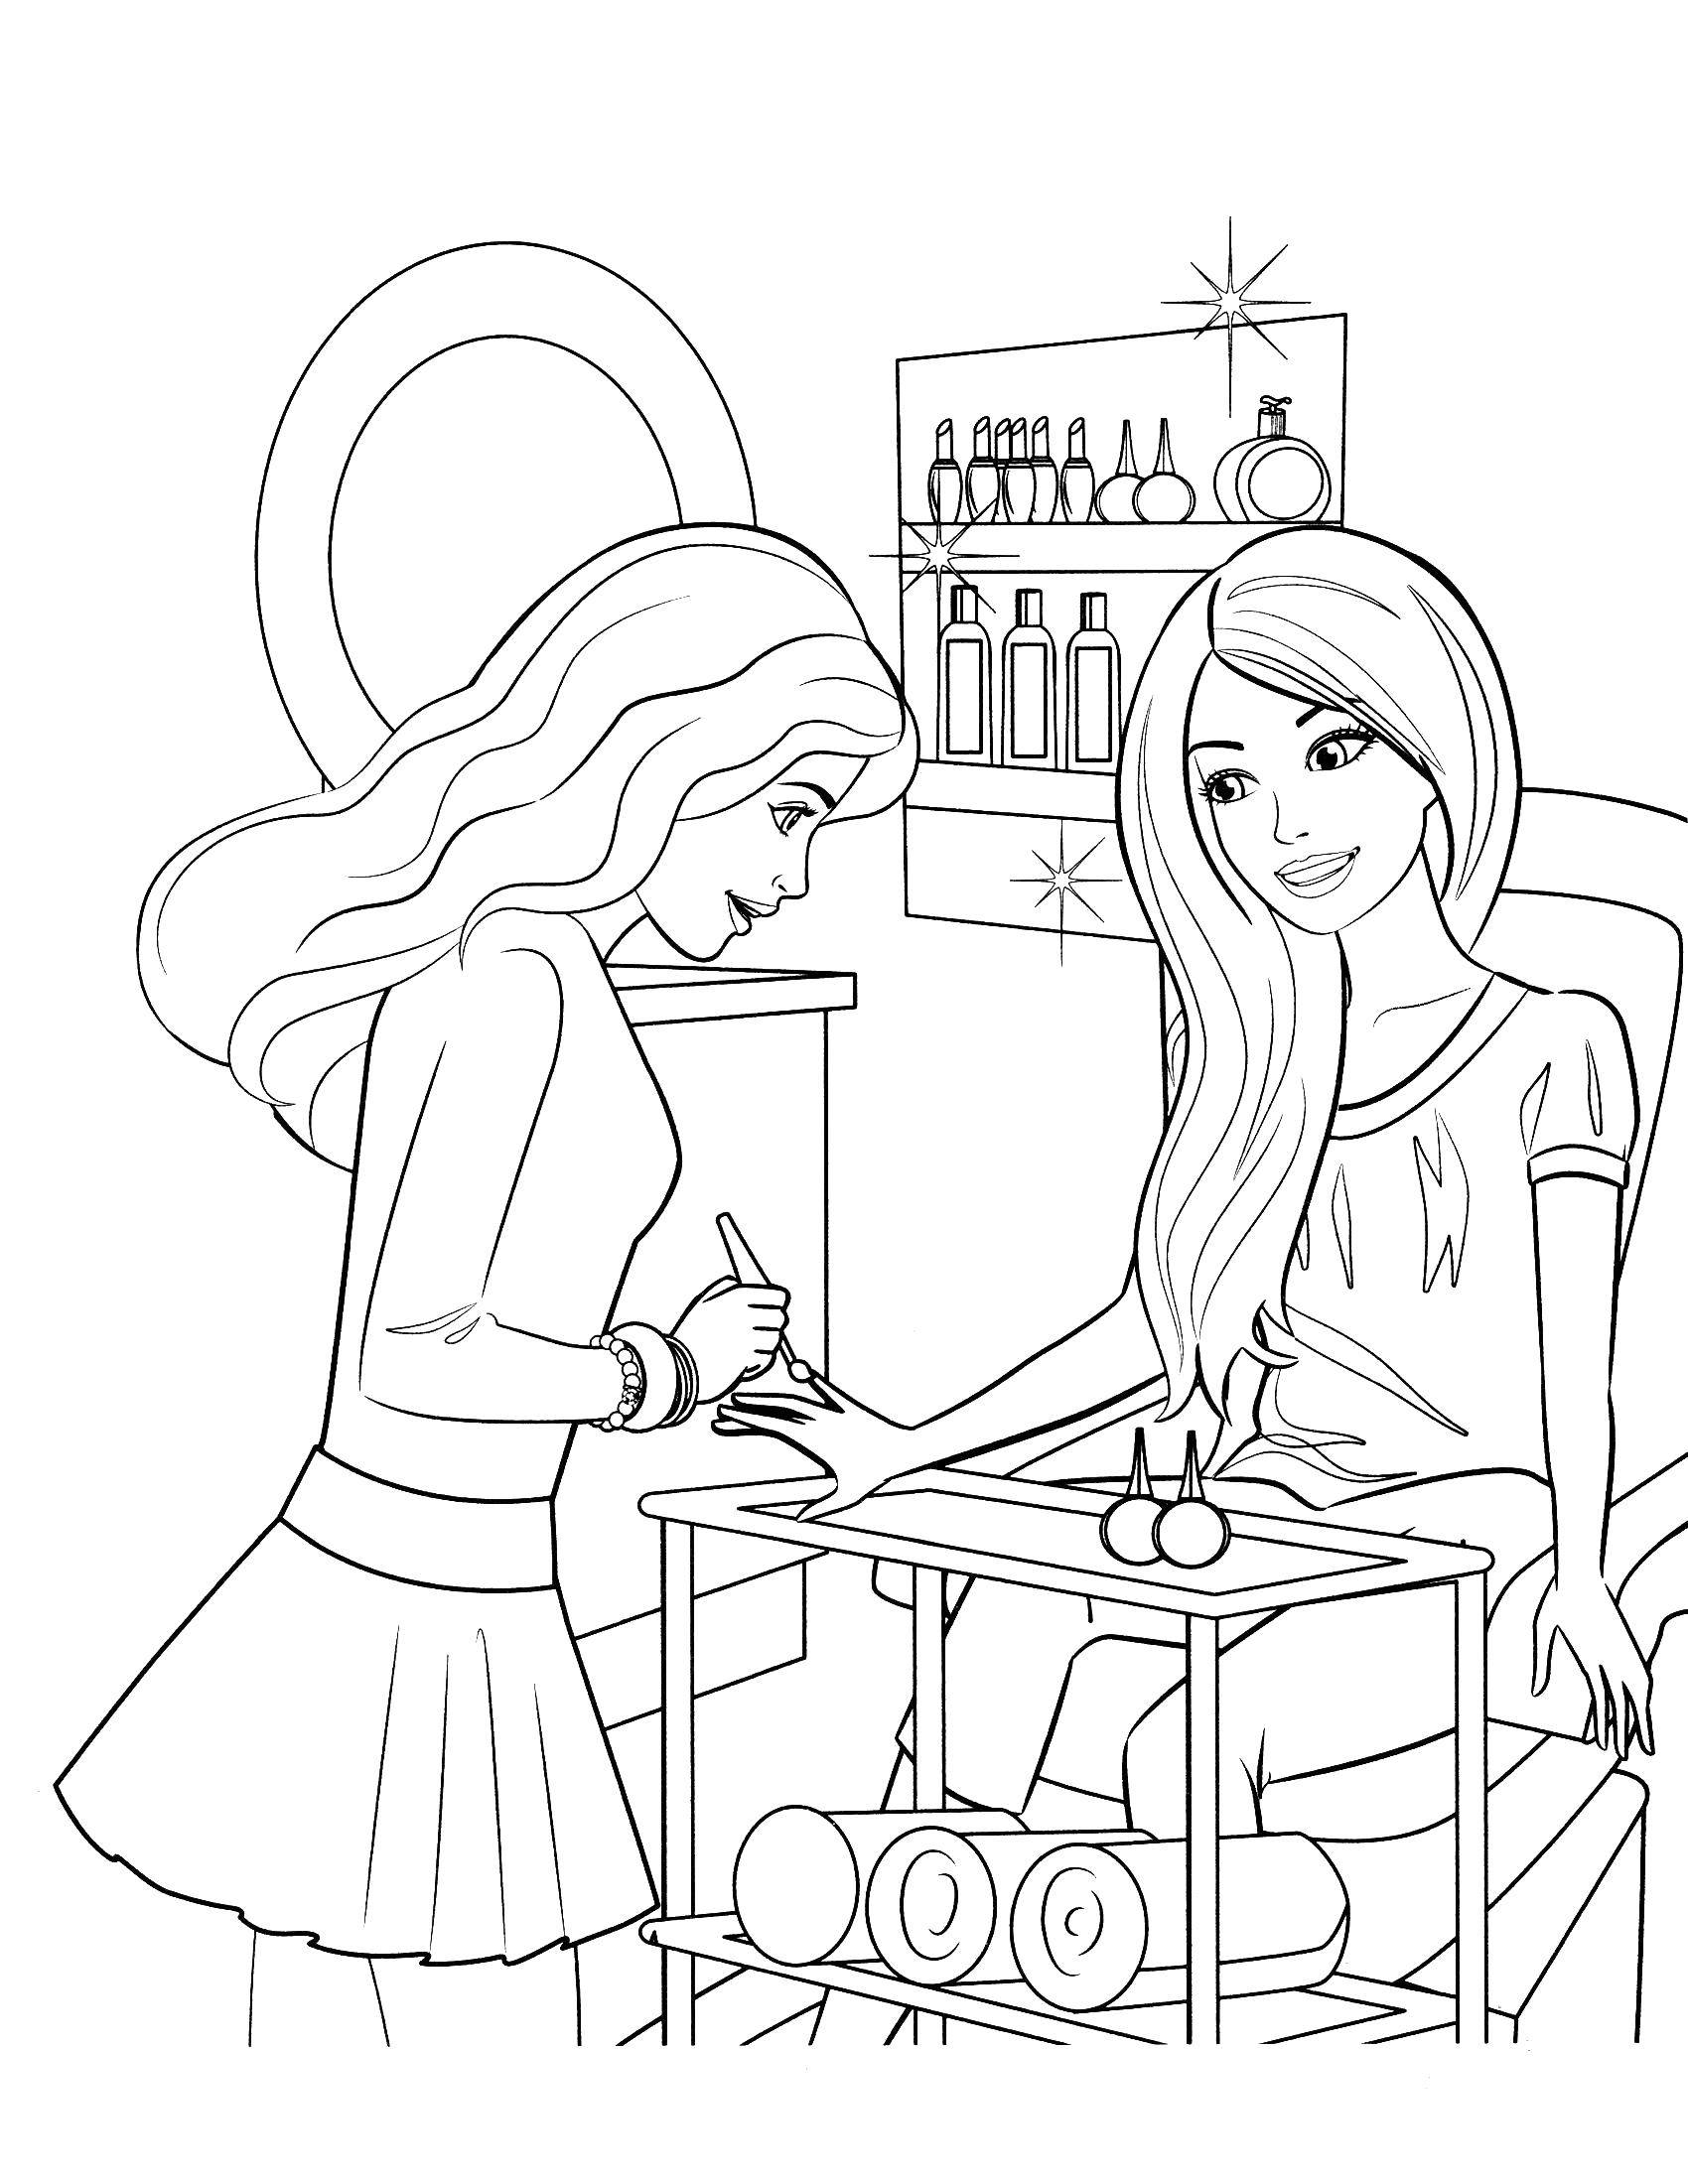 Coloring Barbie in a beauty salon Download Barbie , fashion, beauty,.  Print